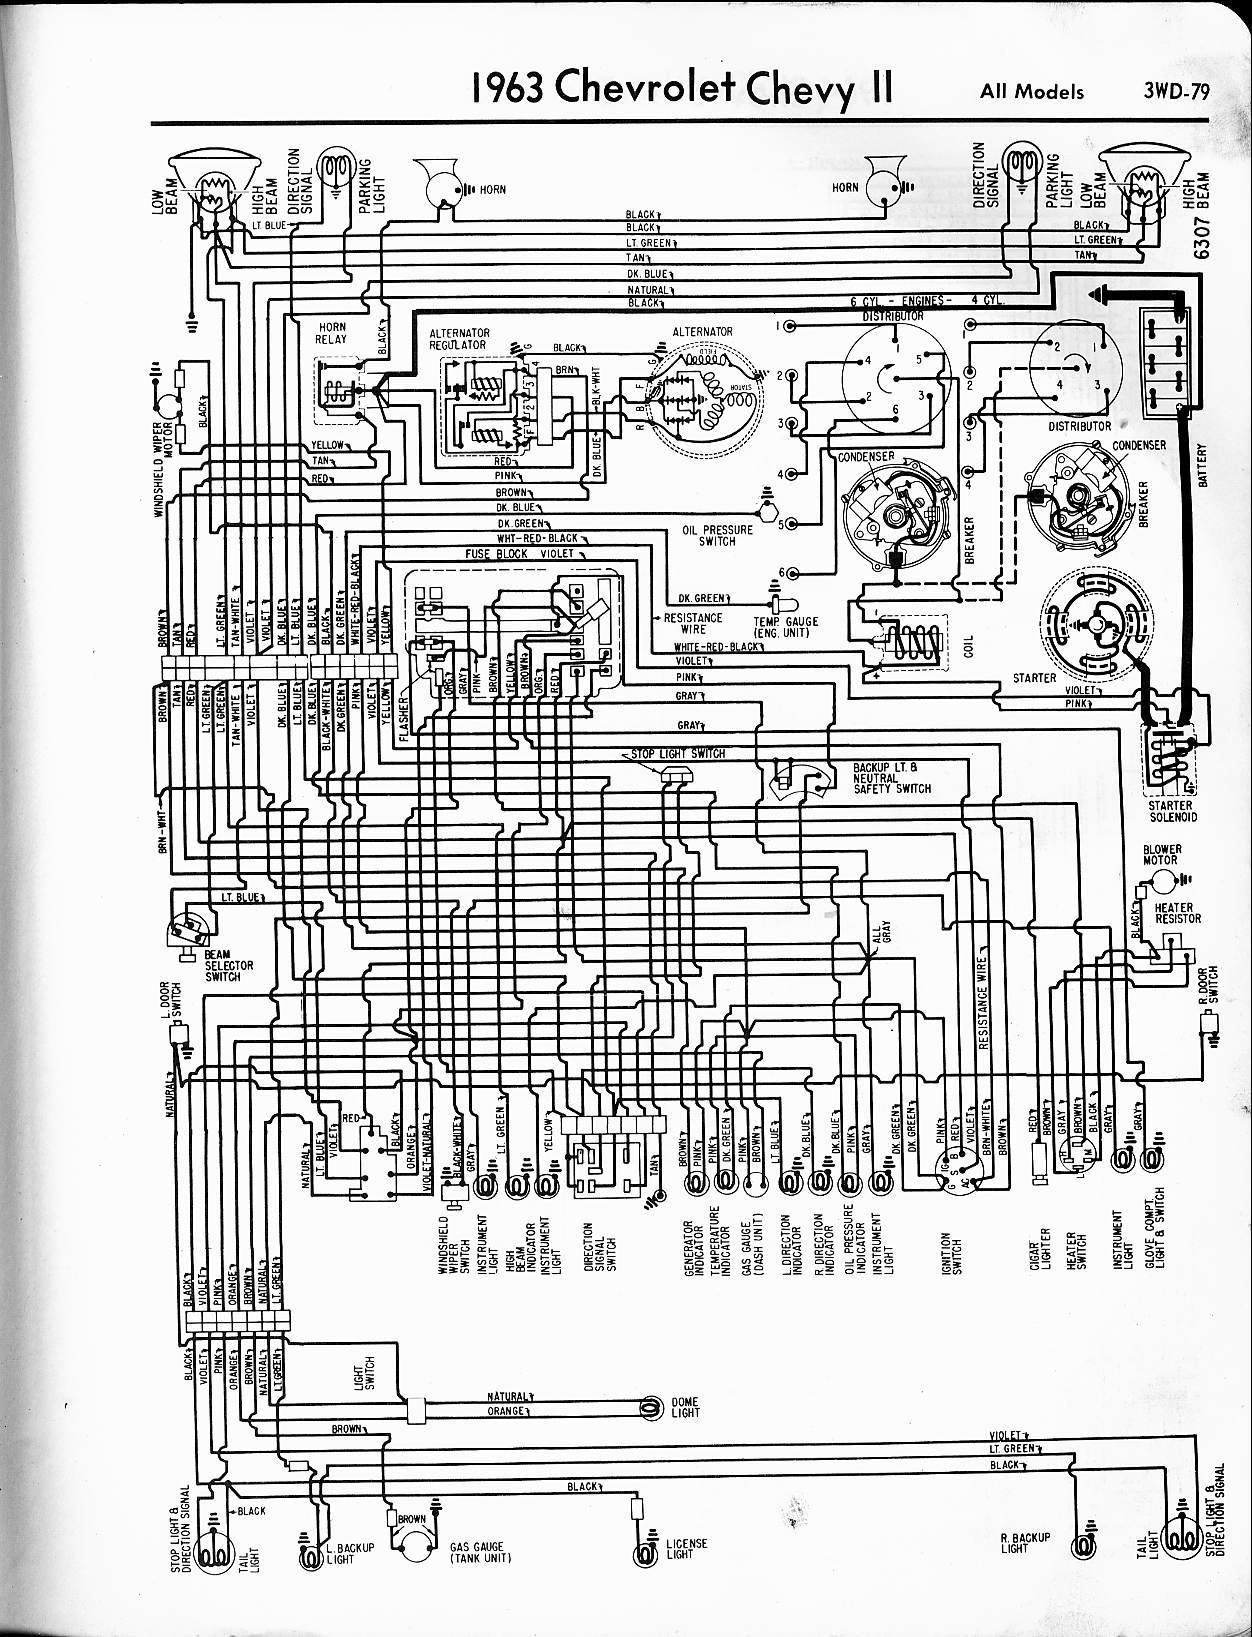 Chevrolet Captiva 2 Engine Wiring Diagram Electrical Diagrams Cruze 1963 Chevy Nova Schematic Library S10 22